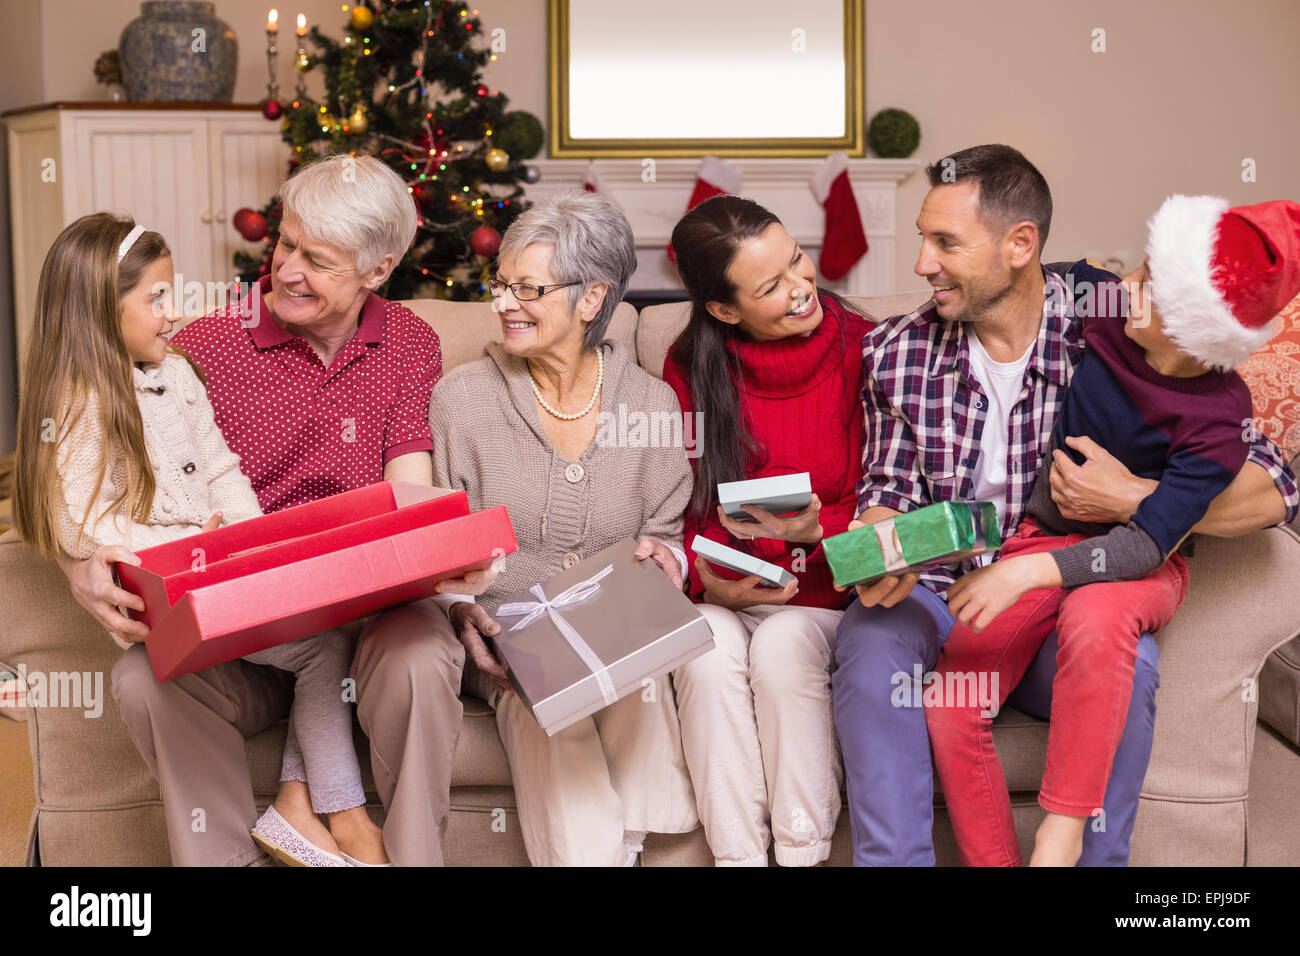 Festive family opening gifts at christmas - Stock Image